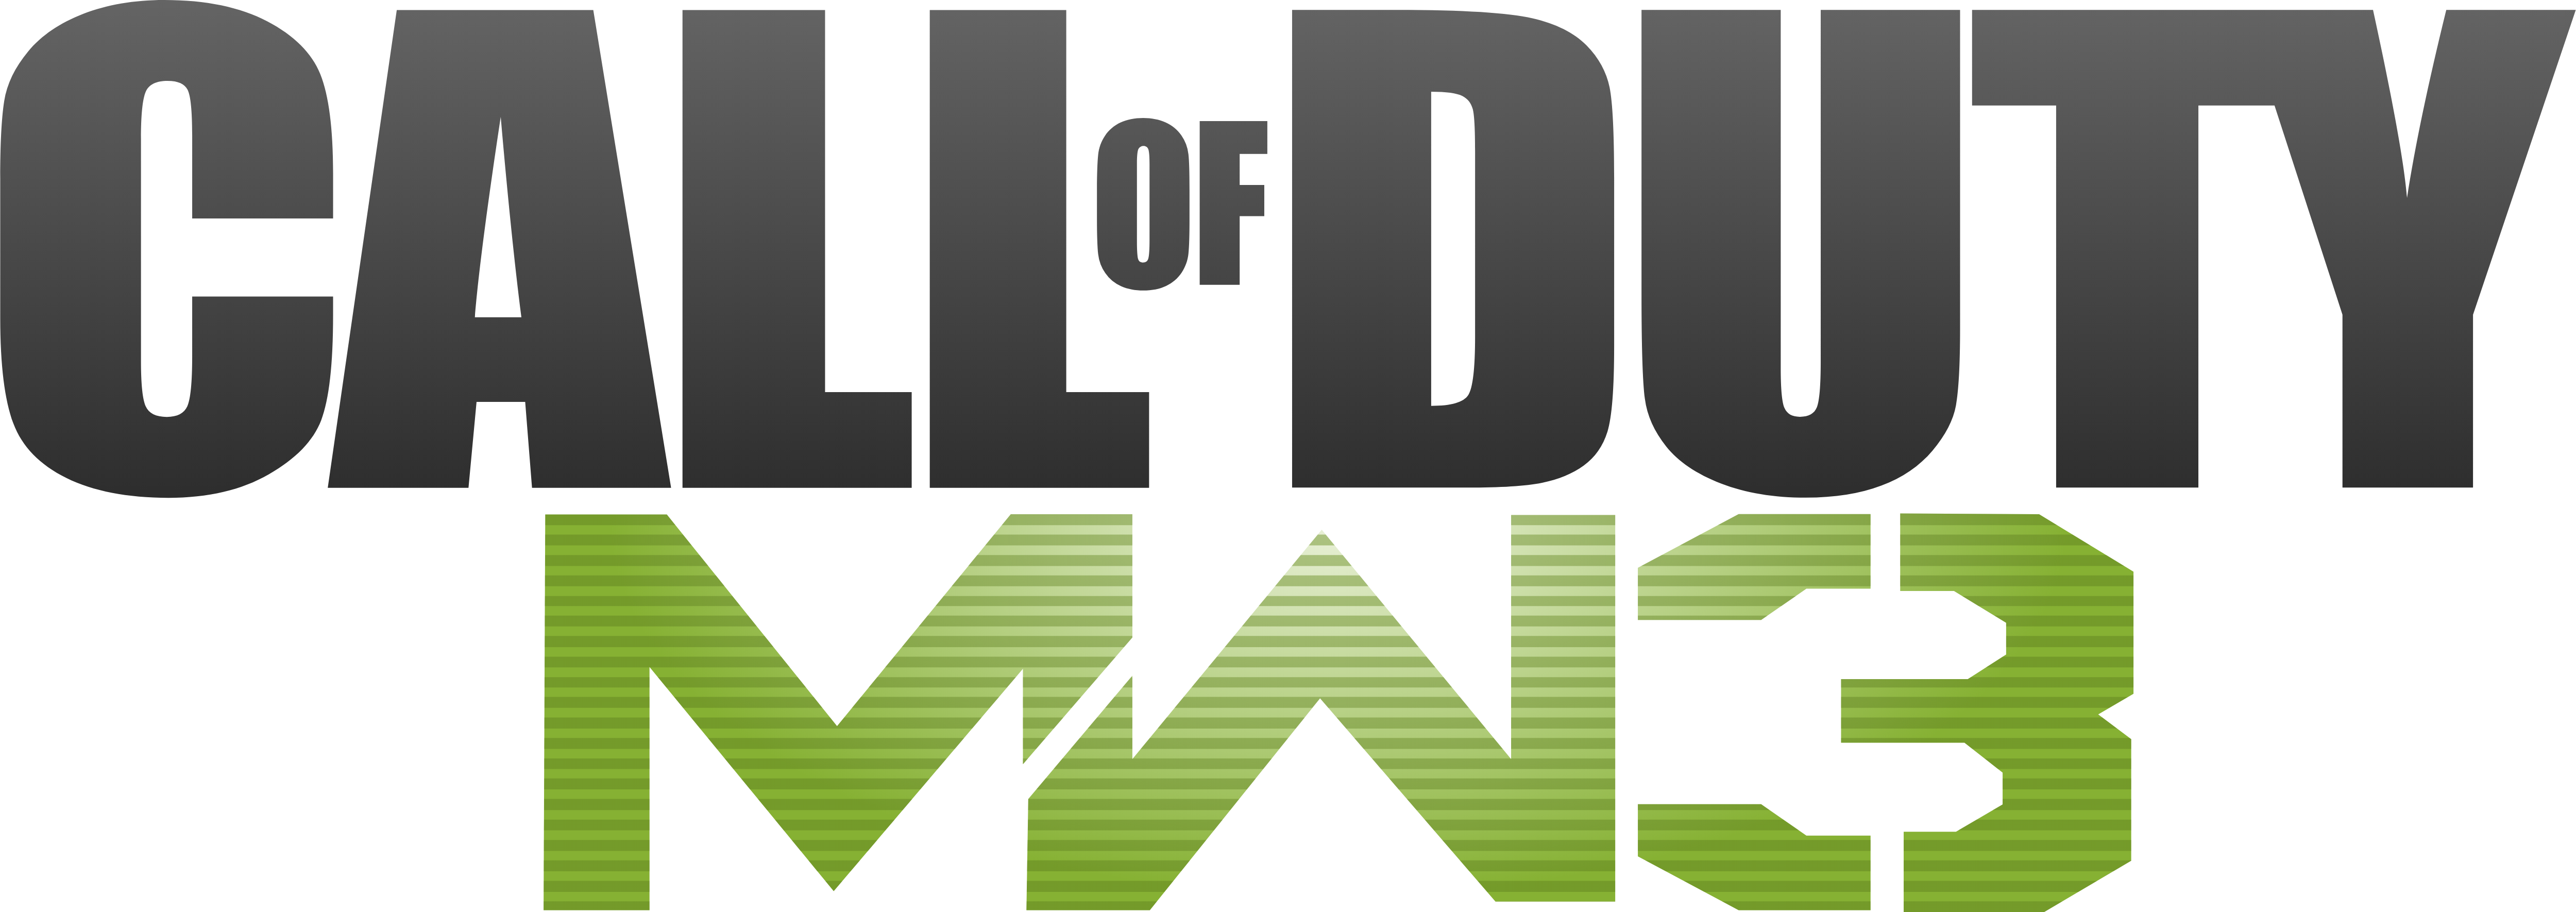 Call Of Duty Logos Download